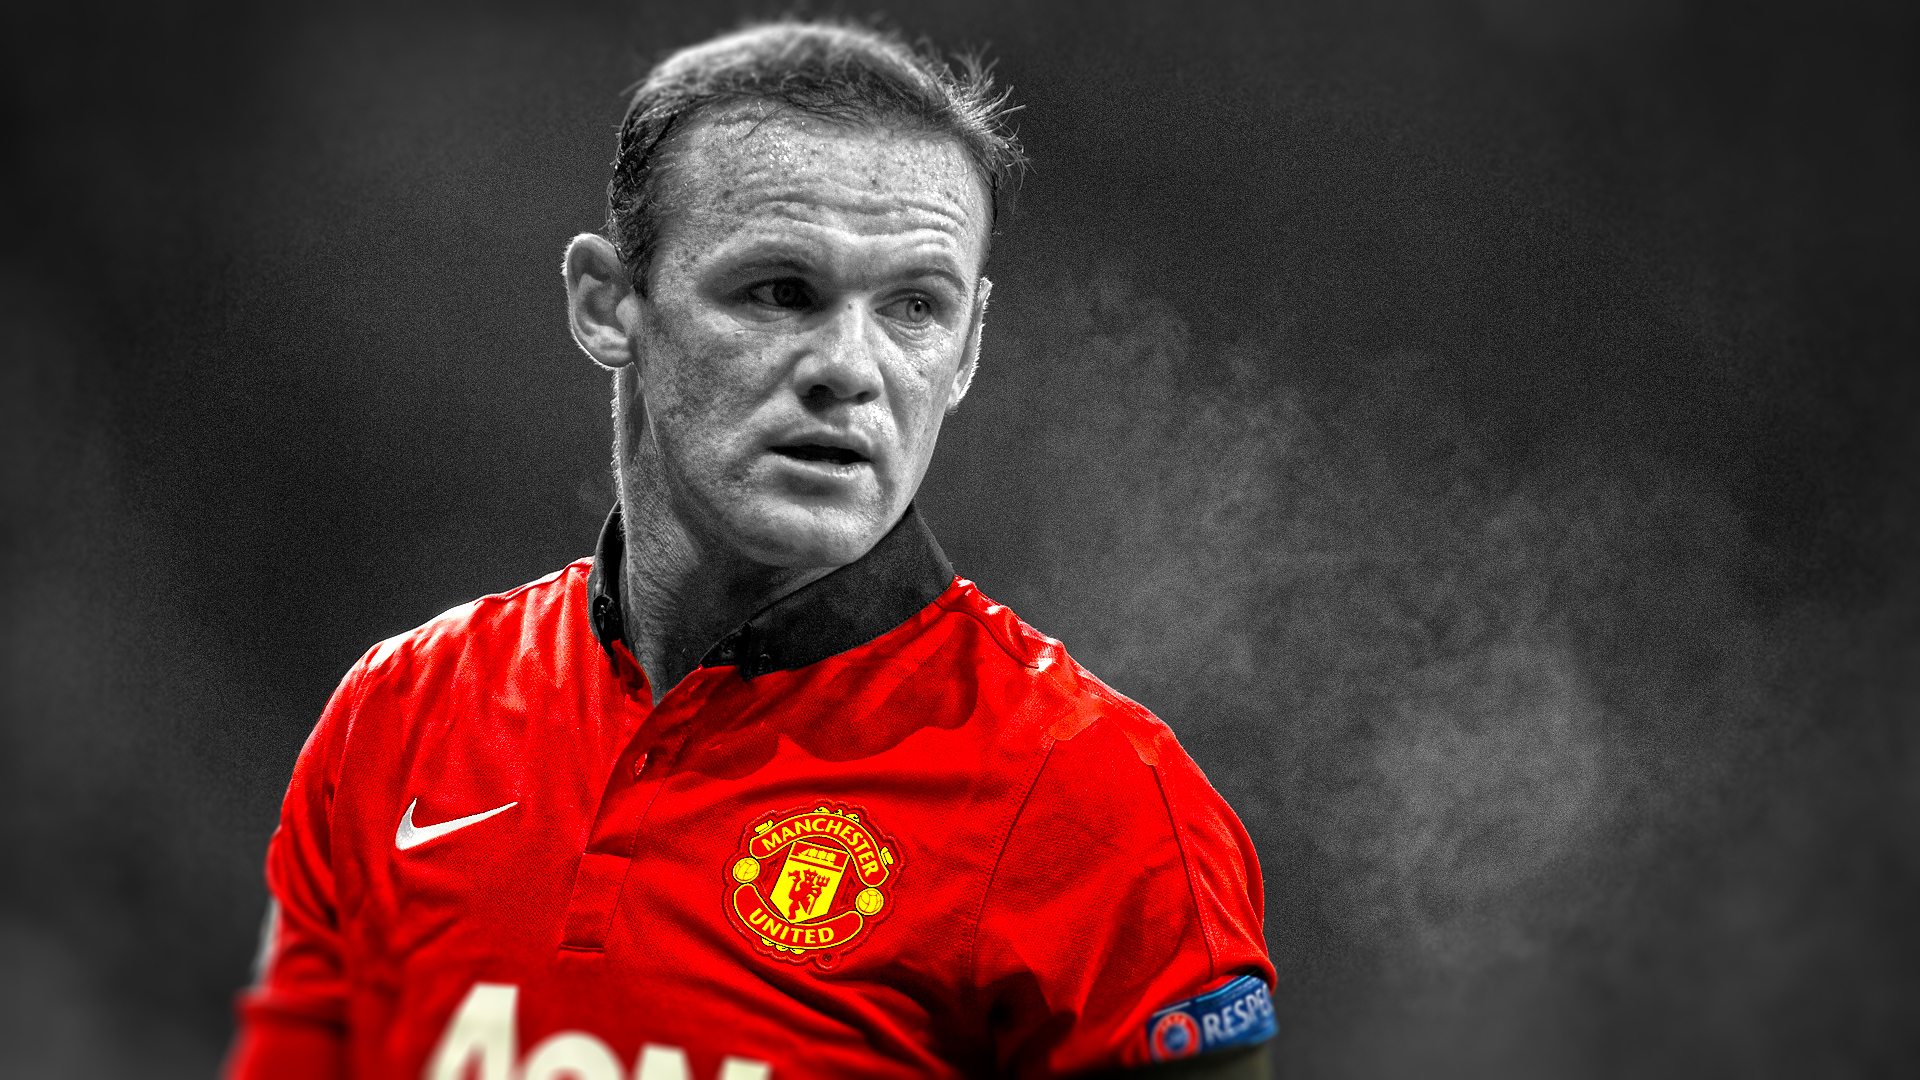 Wayne Rooney Wallpapers High Resolution and Quality Download 679b413d4